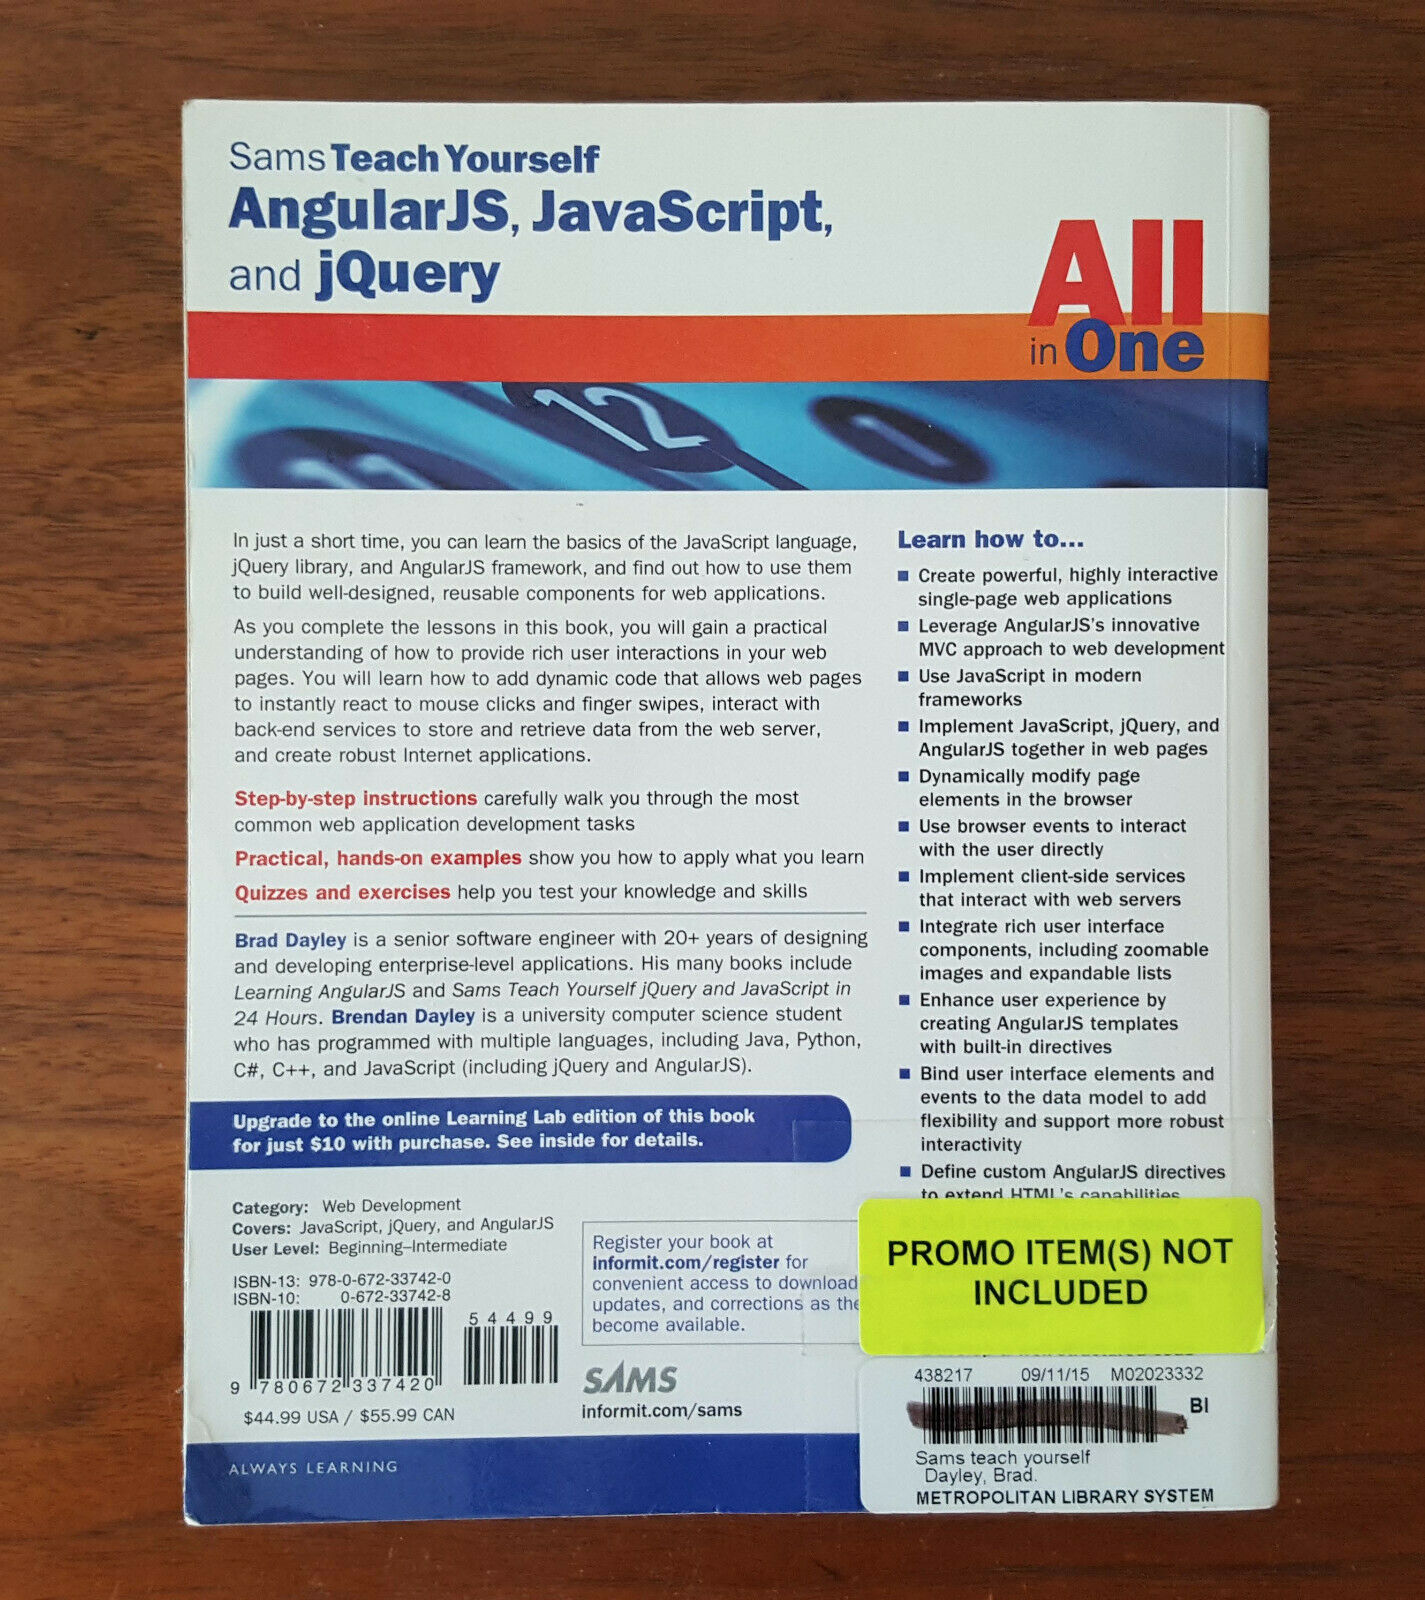 Sams Teach Yourself All in One AngularJS Java Script and jQuery Book Only  